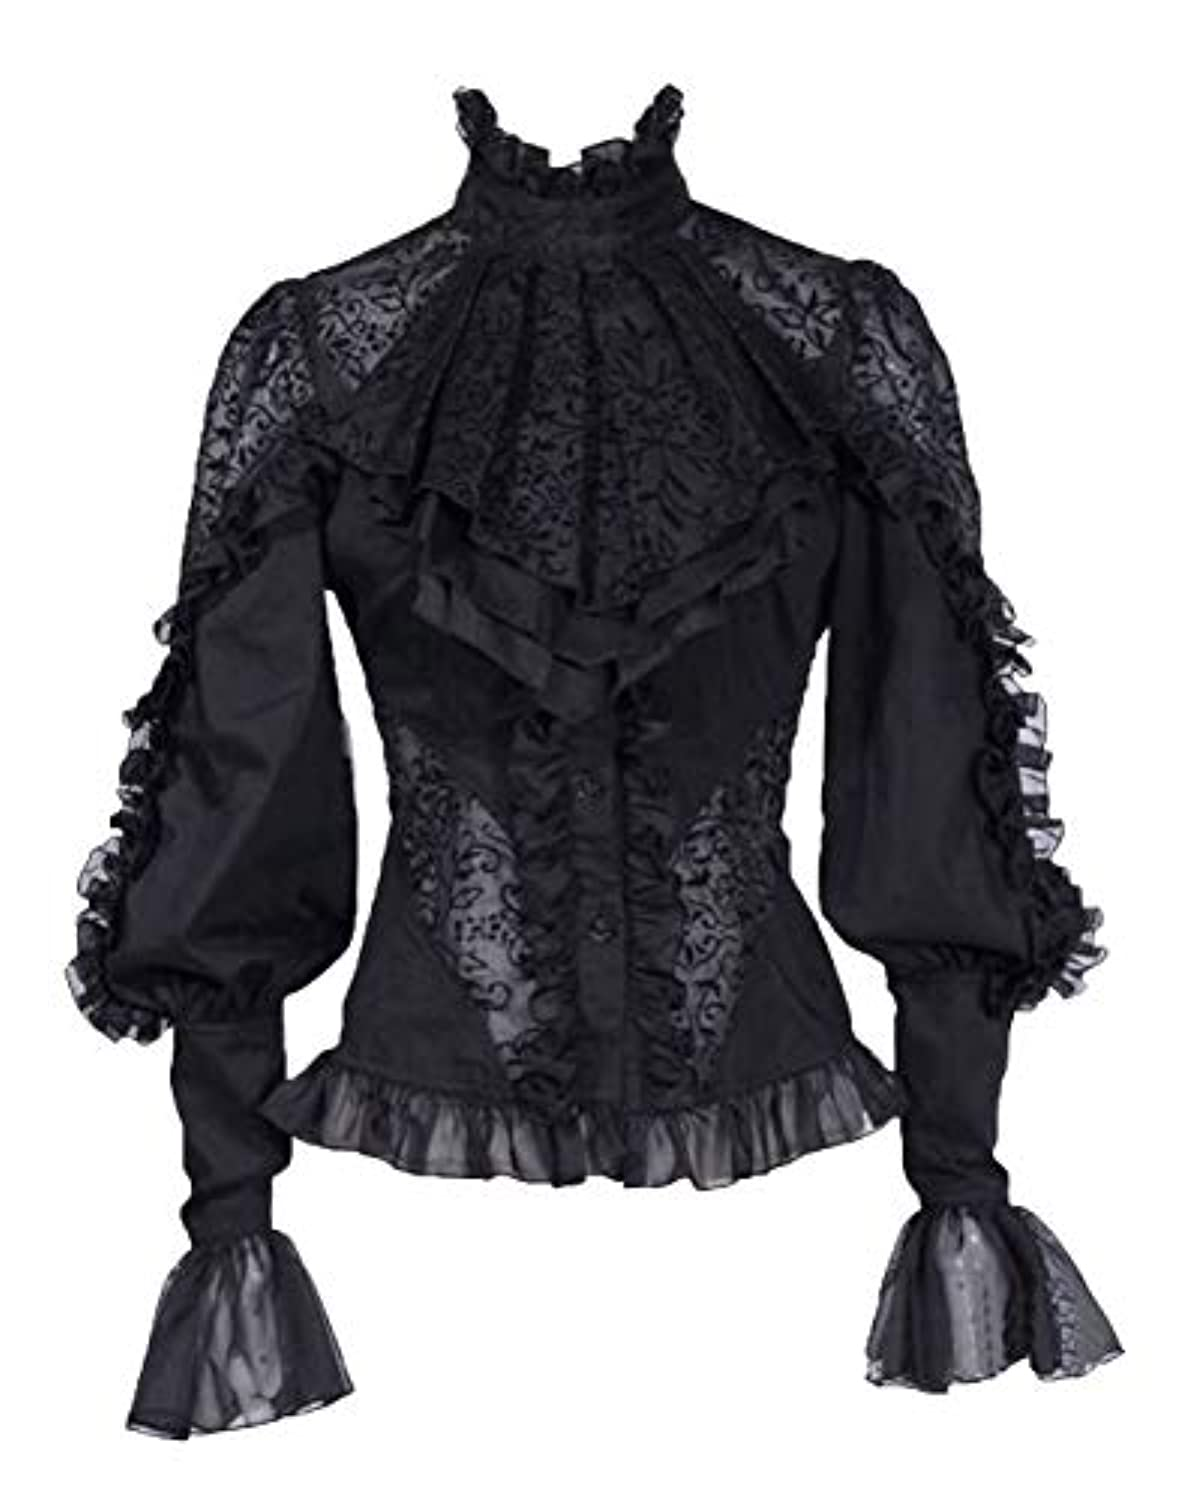 Nite closet Victorian Shirt Women Lace Bowtie Tops Long Sleeve Gothic Lolita